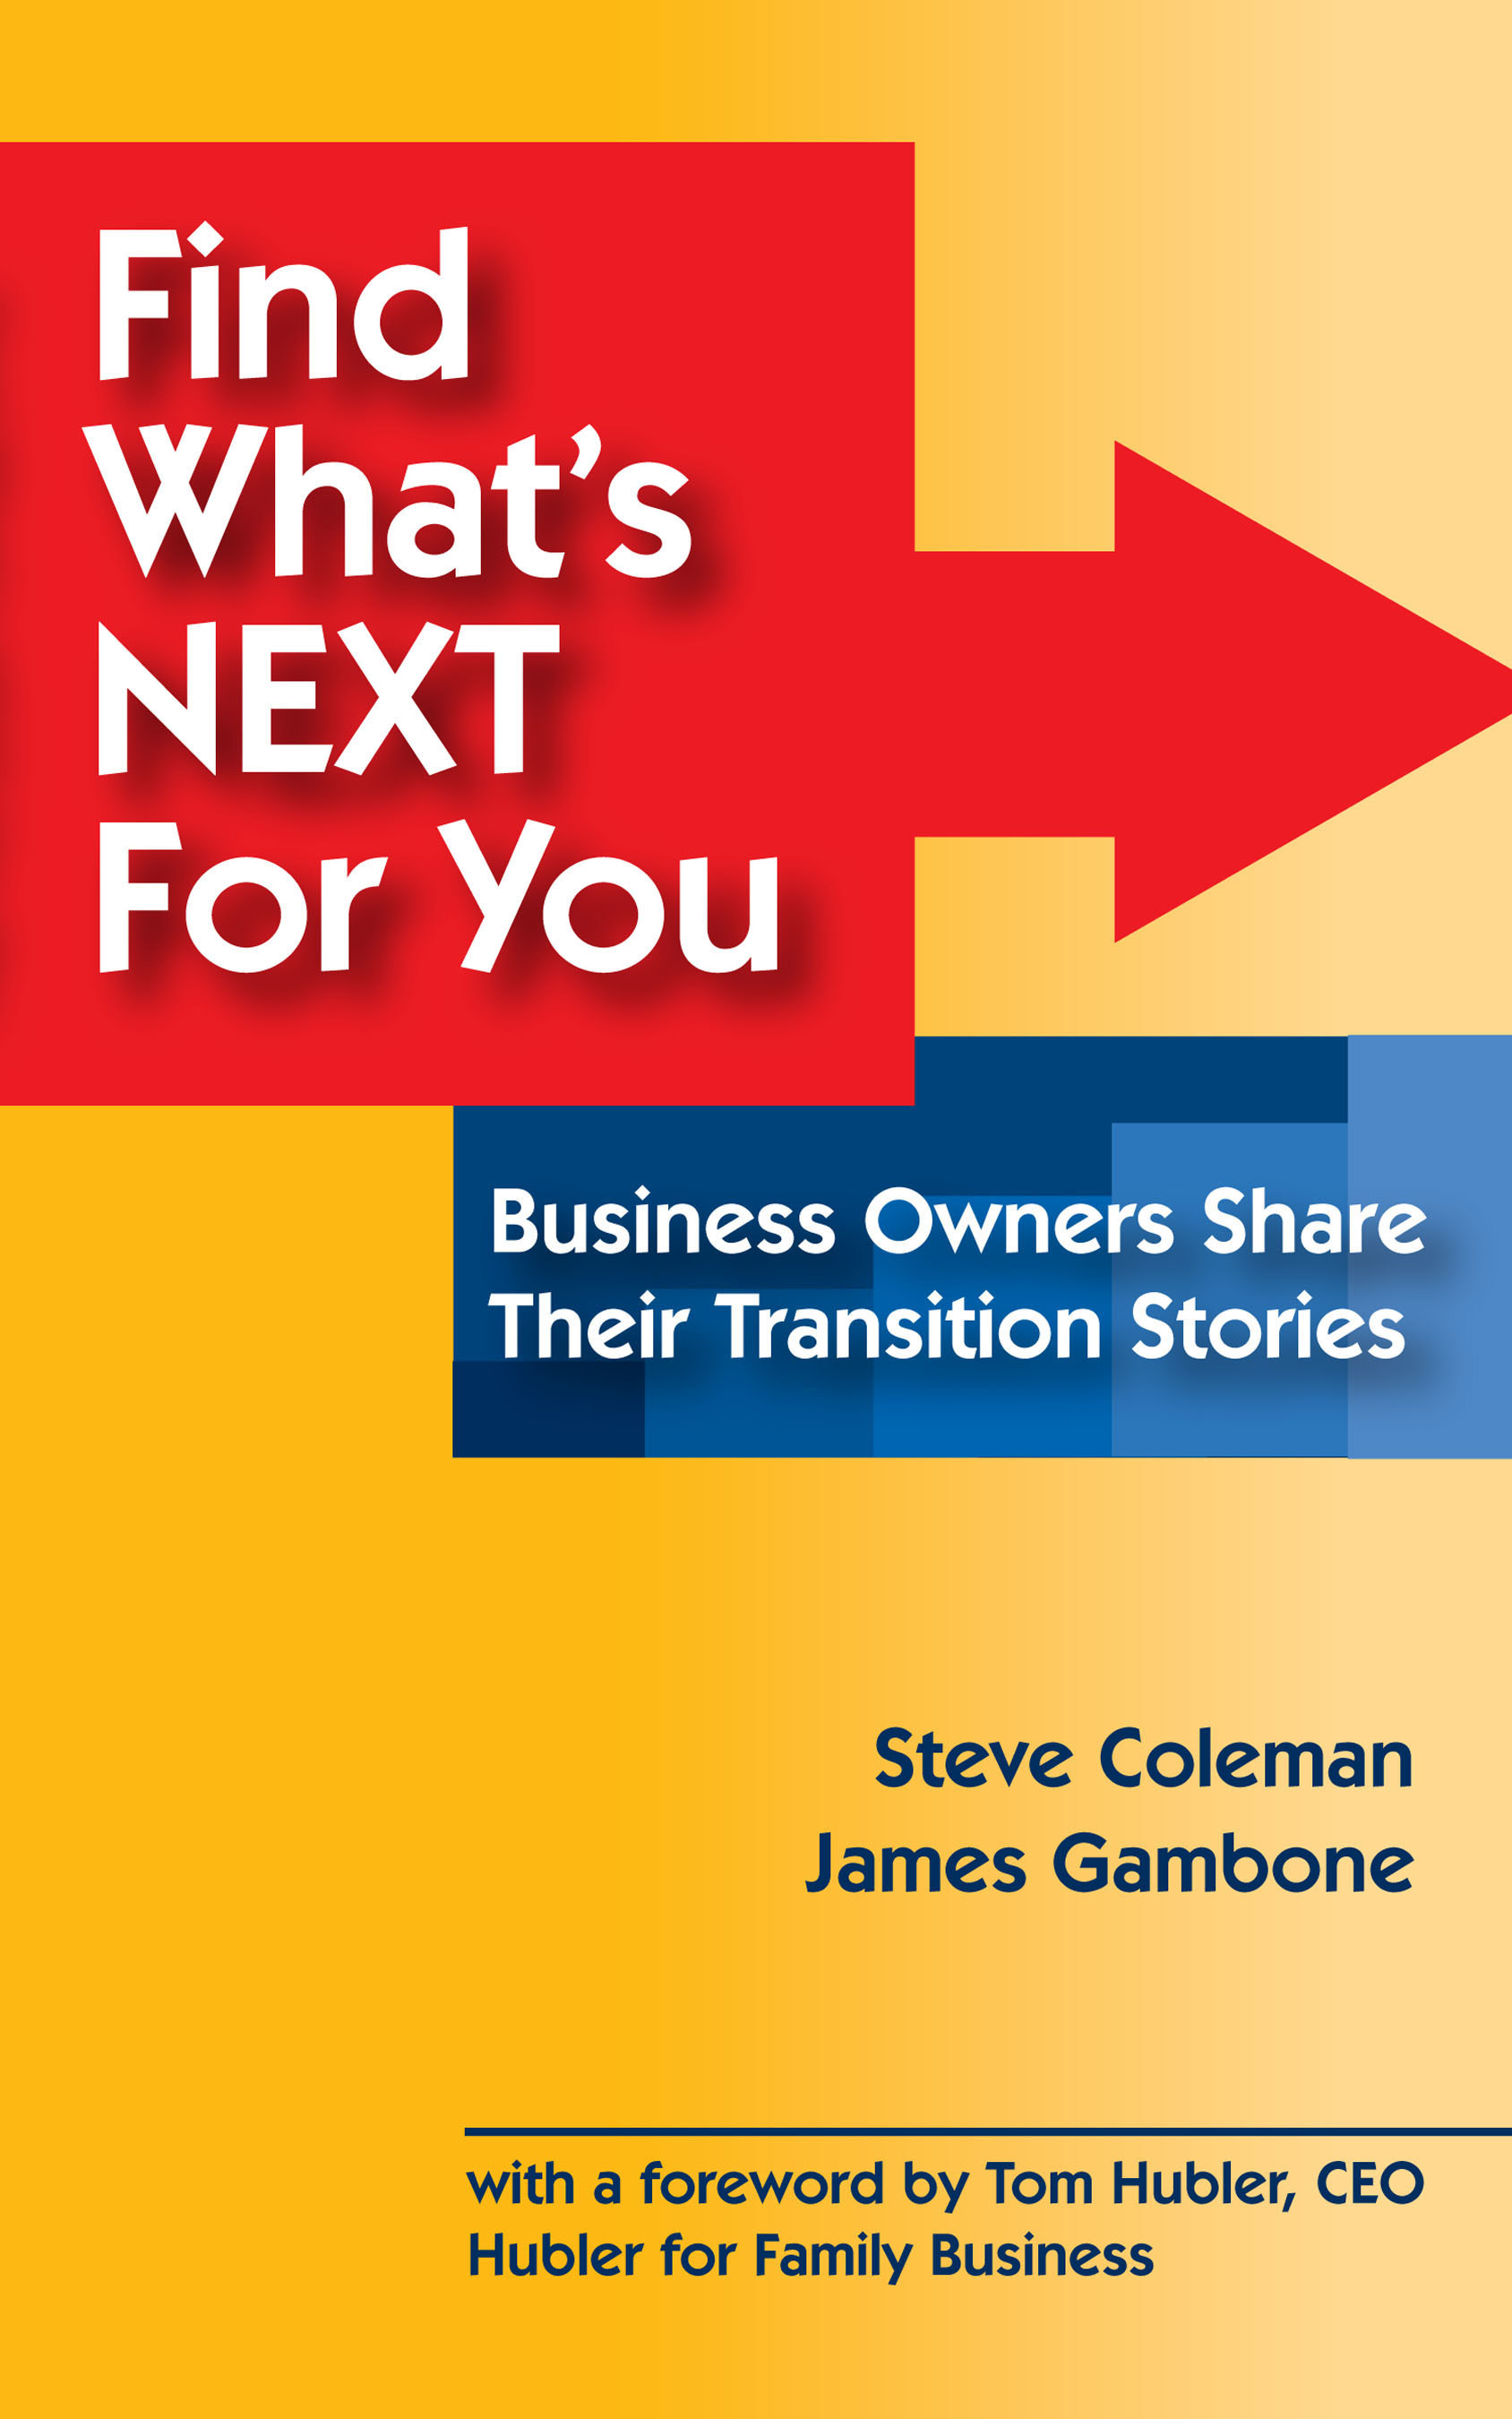 Real Stories About Business Owners in Transition is Released